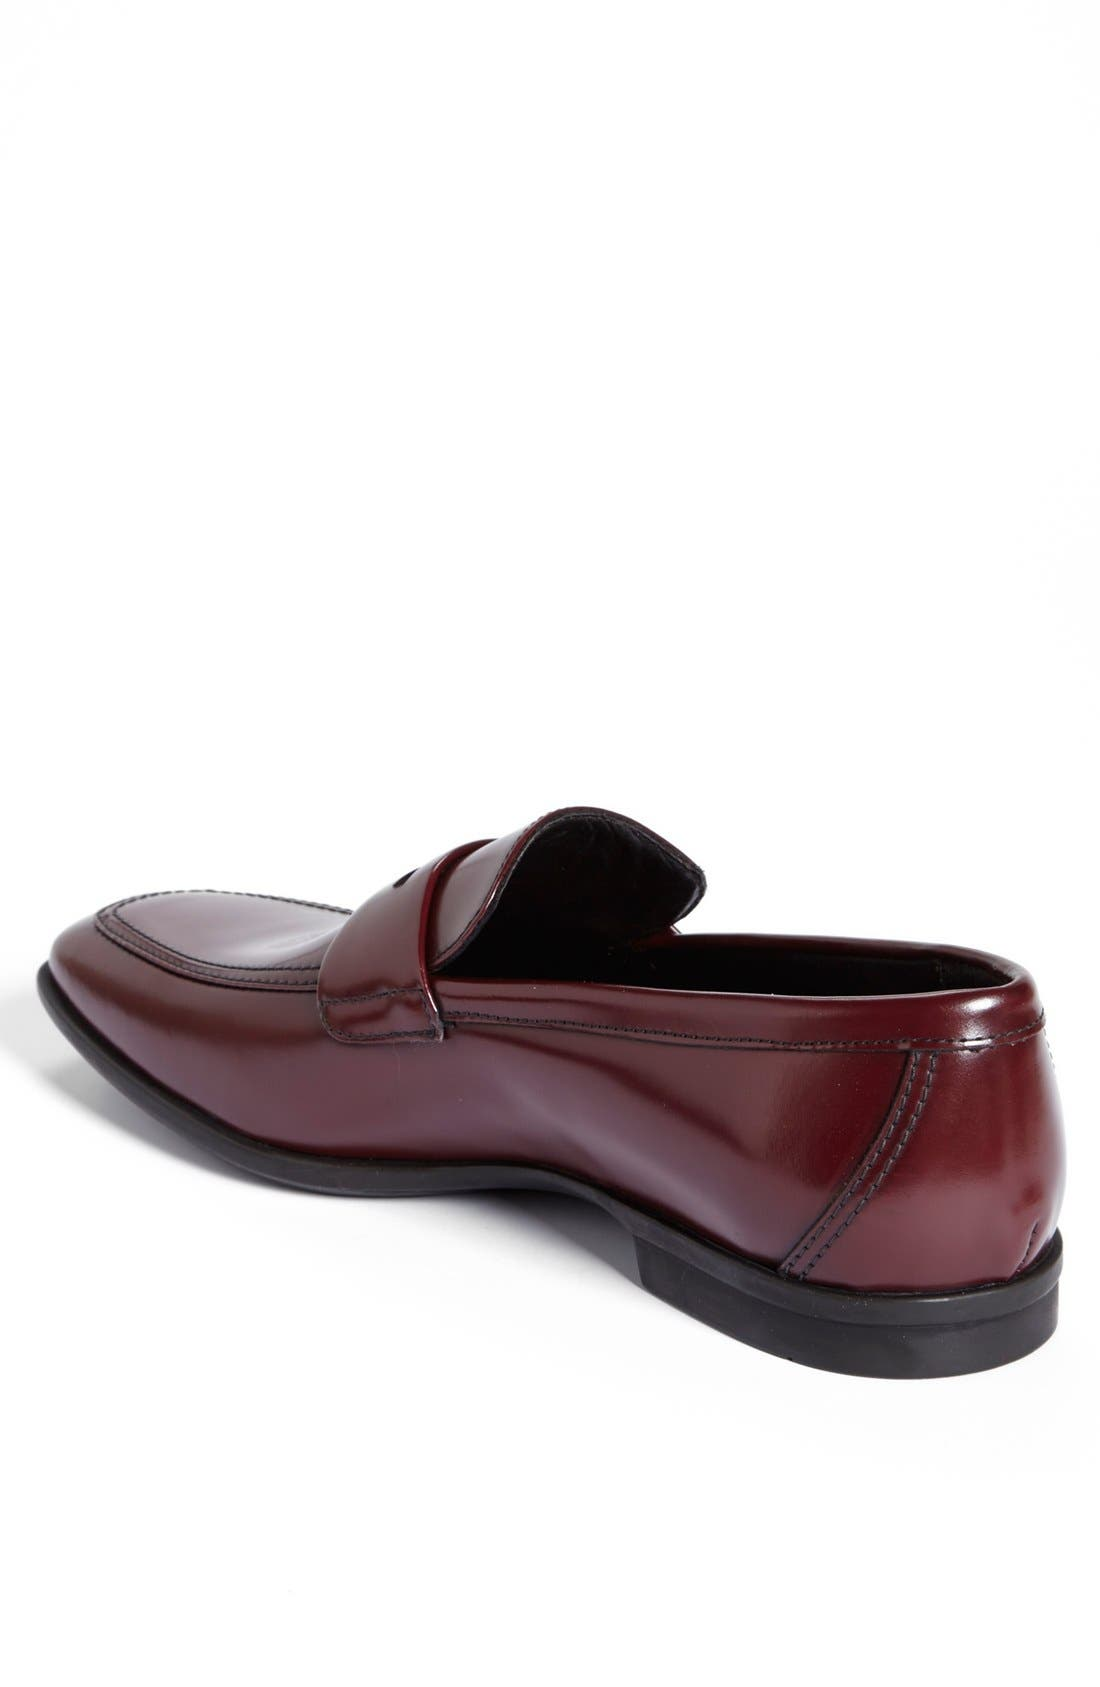 Alternate Image 2  - Bruno Magli 'Millonia' Penny Loafer